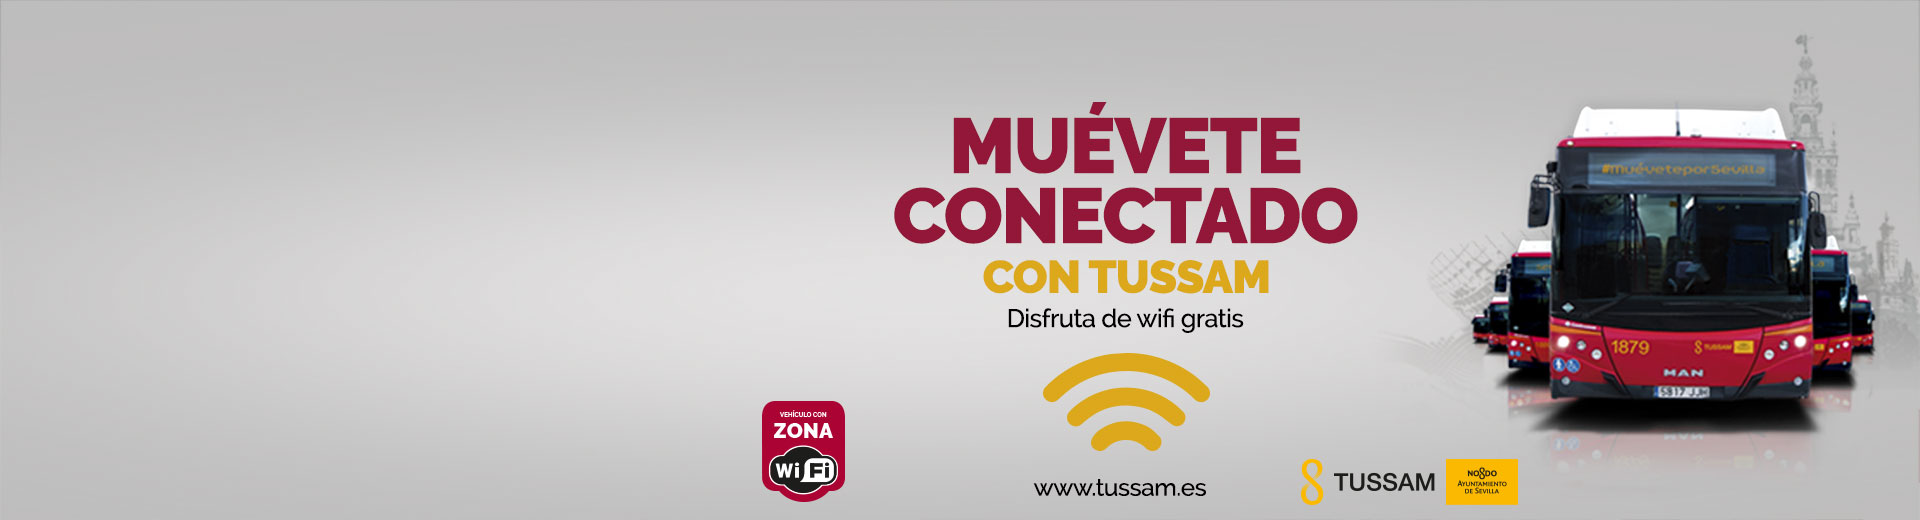 https://www.tussam.es/sites/default/files/revslider/image/Slider_1920_Alto520_0.jpg